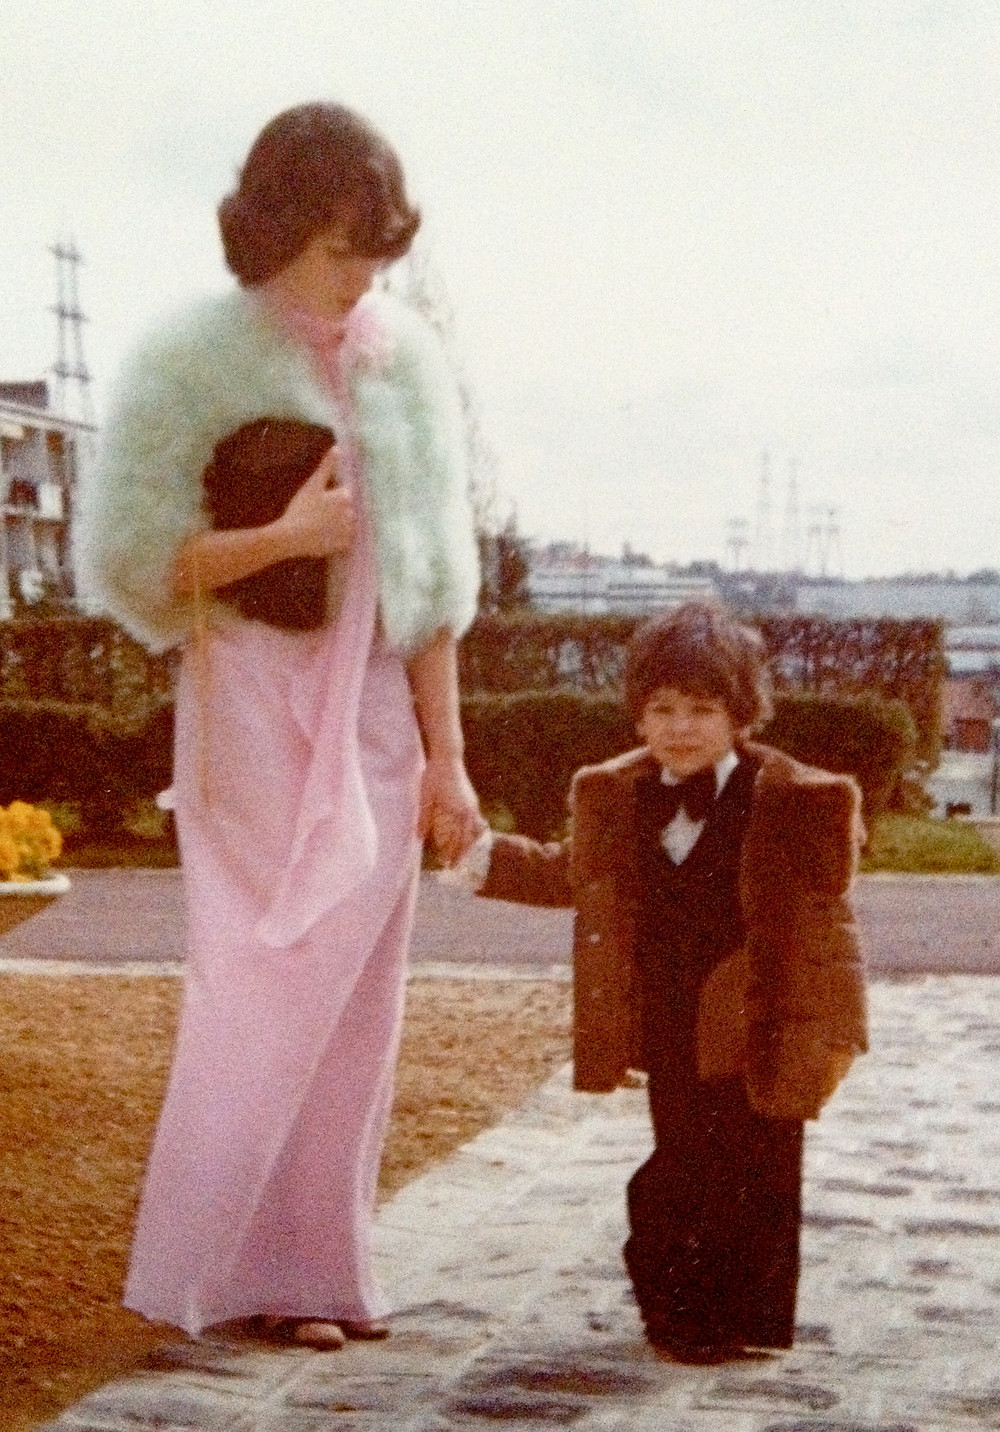 A photo of a young mom and her son. It's an older photo. The mom wears a long pink dress and a white short fur coat. the boy has a little brown fur coat. they are holding hands.